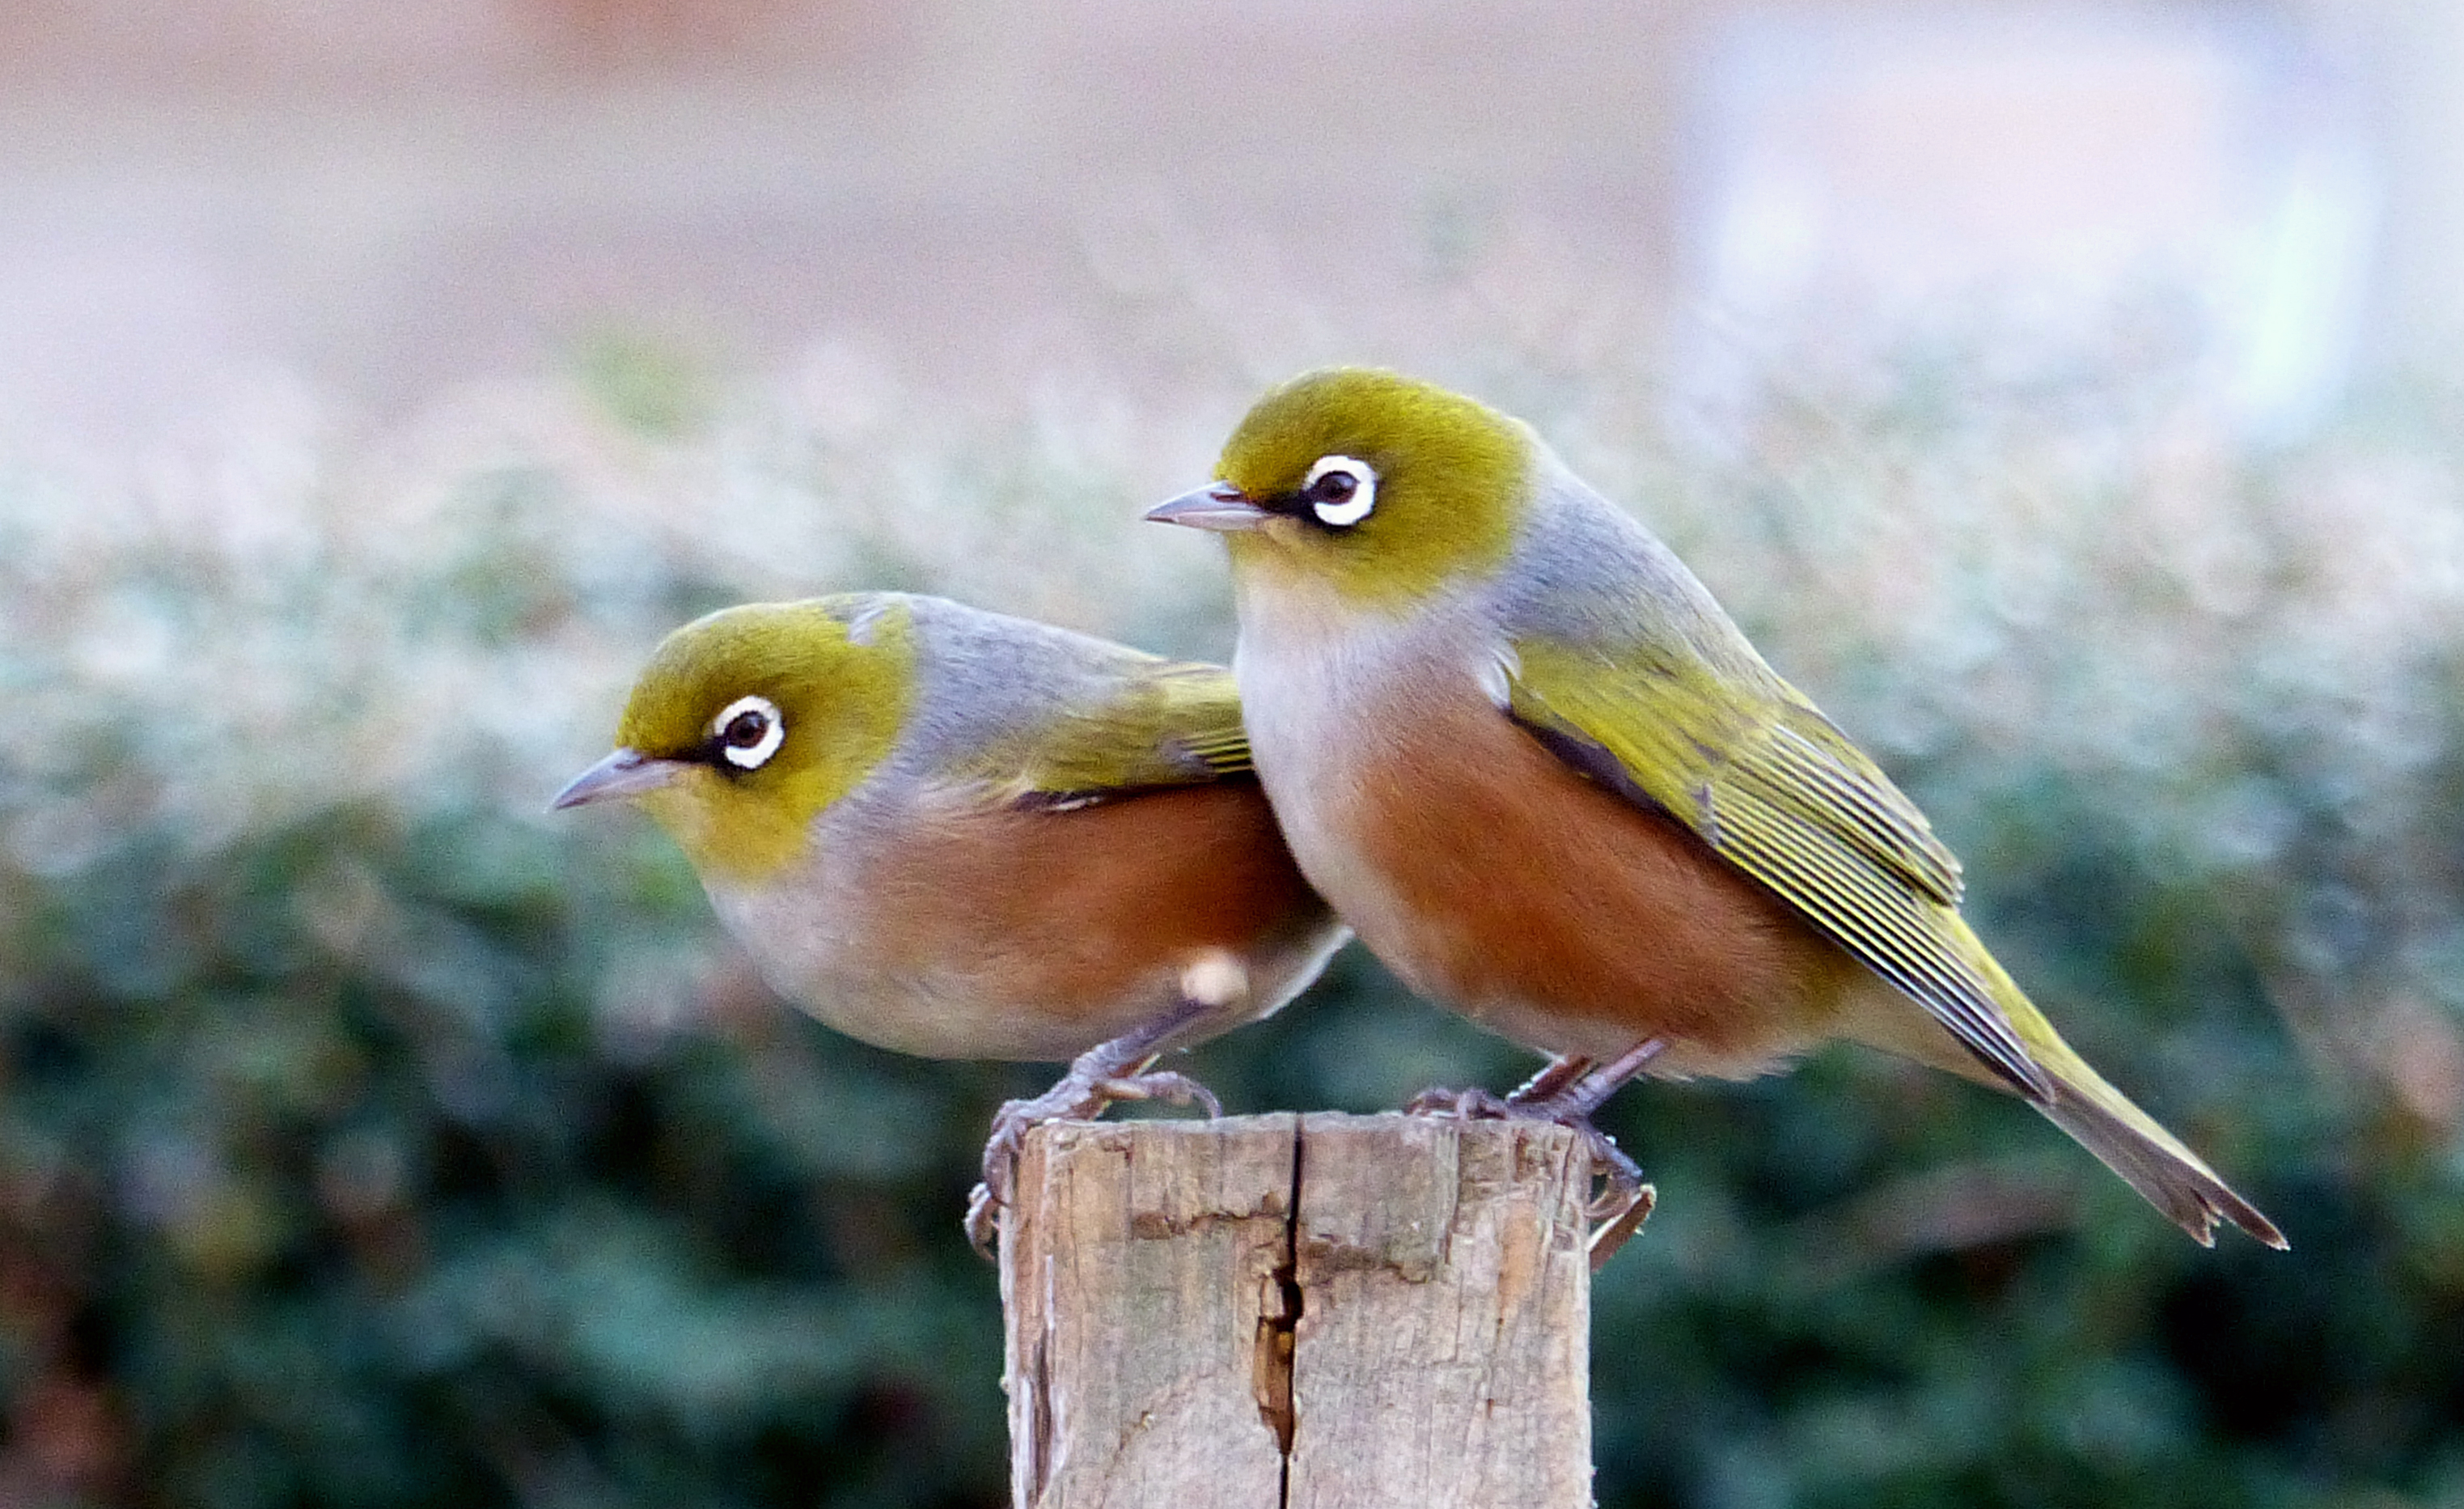 A pair of waxeyes. photo